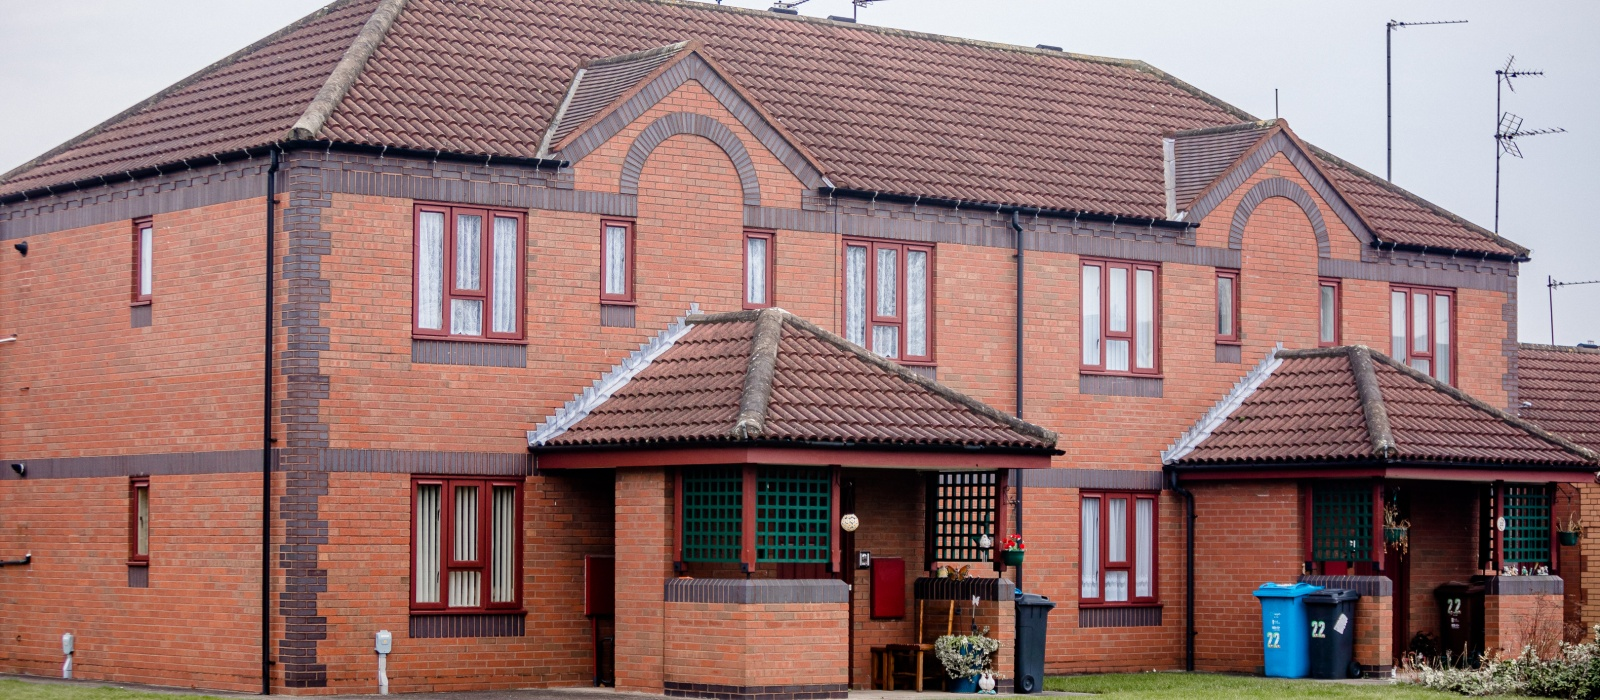 Cromarty Close,Hull,HU9 3LG,2 Bedrooms Bedrooms,1 BathroomBathrooms,Apartment,Cromarty Close,1045